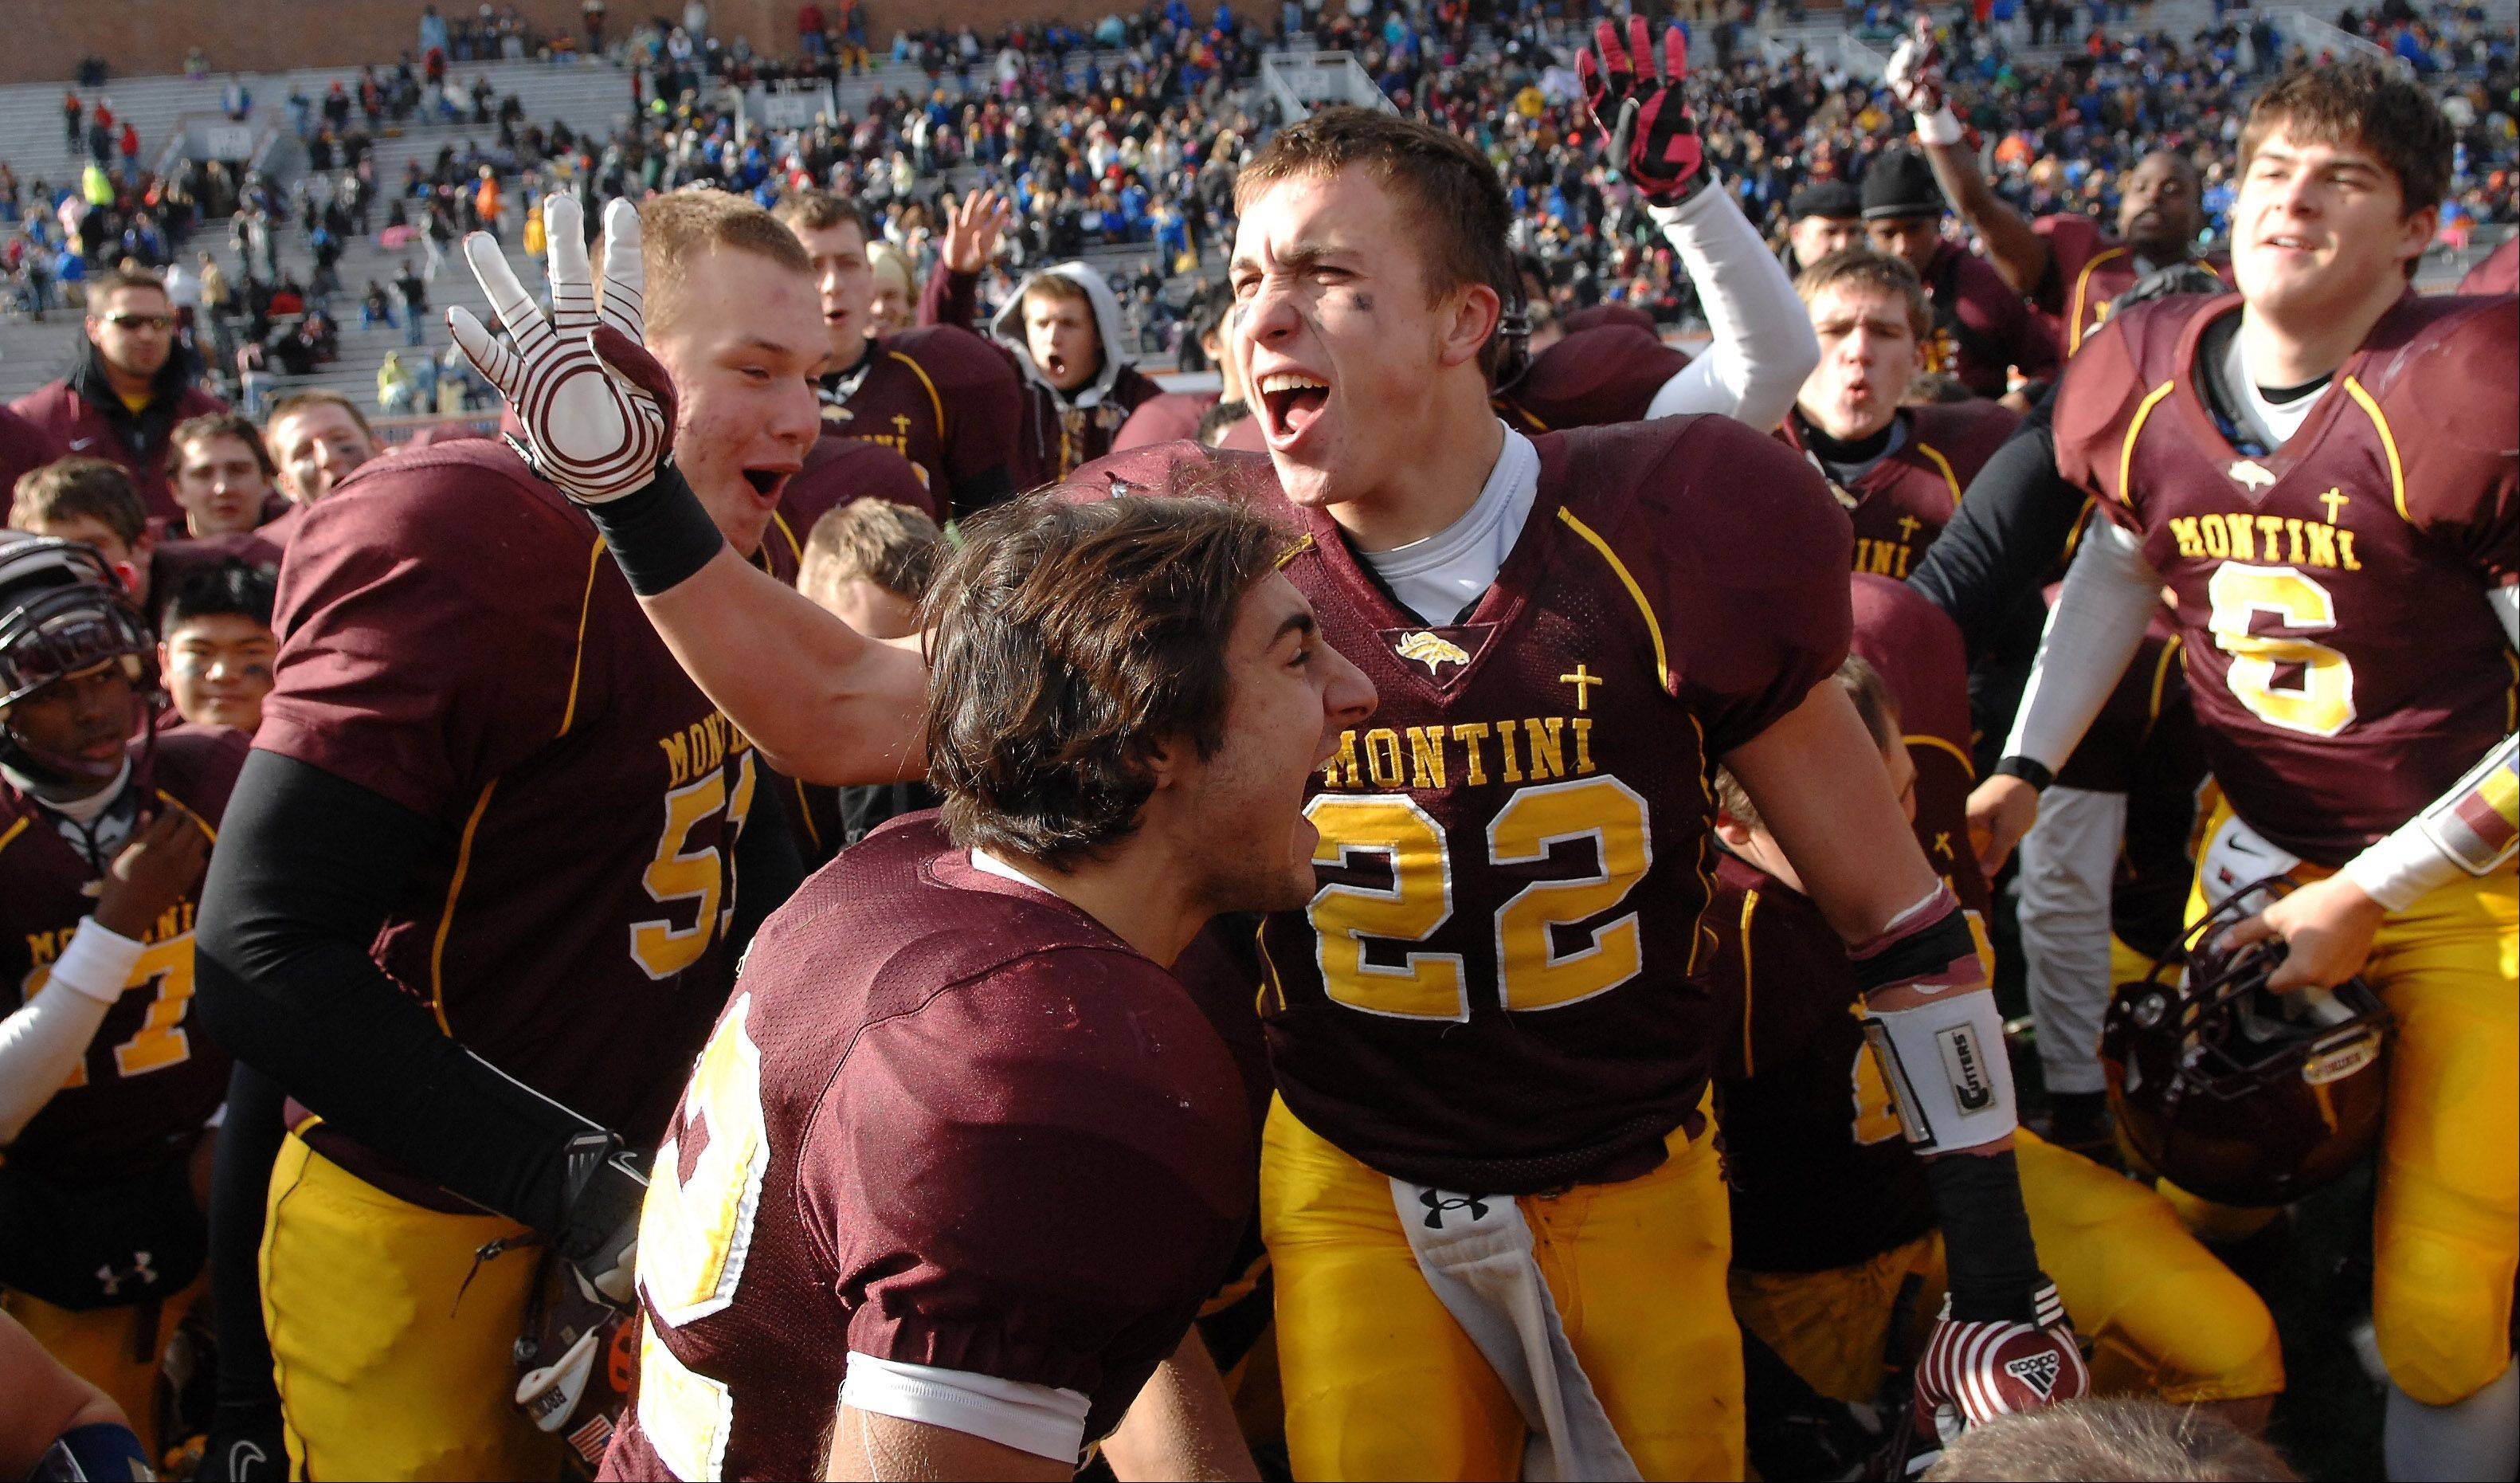 Montini's Ryan Starbeck (22) and his teammates celebrate after their win over Morris during Saturday's Class 5A state title game at Memorial Stadium in Champaign.